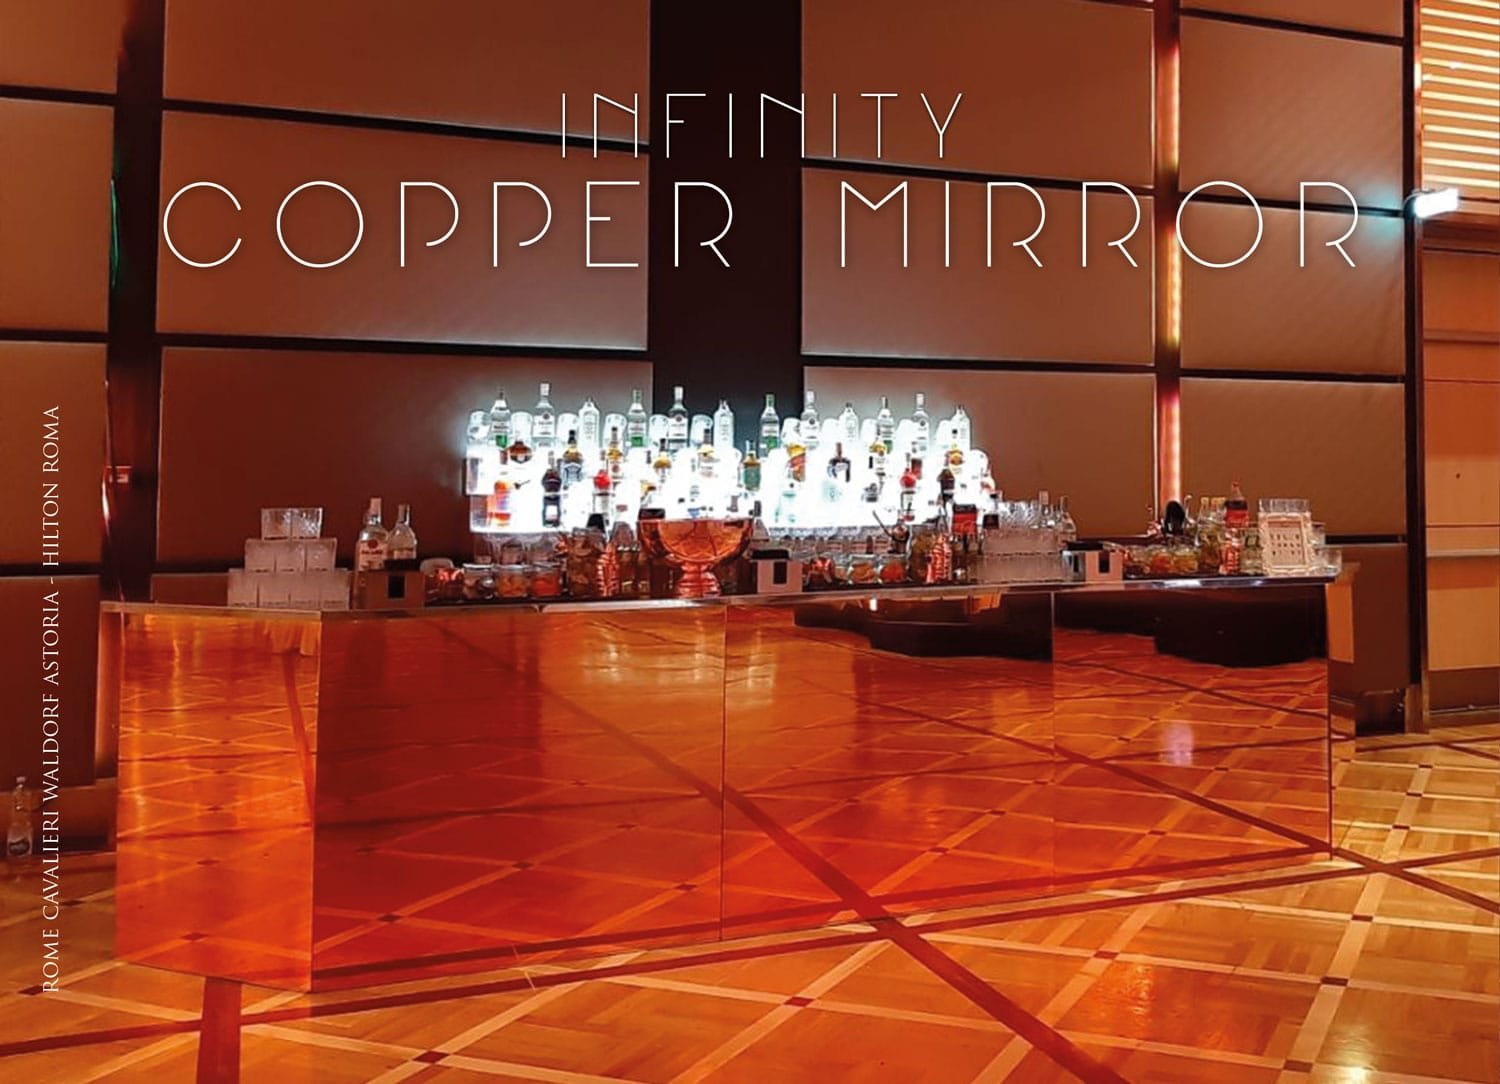 INFINITY COPPER MIRROE BAR